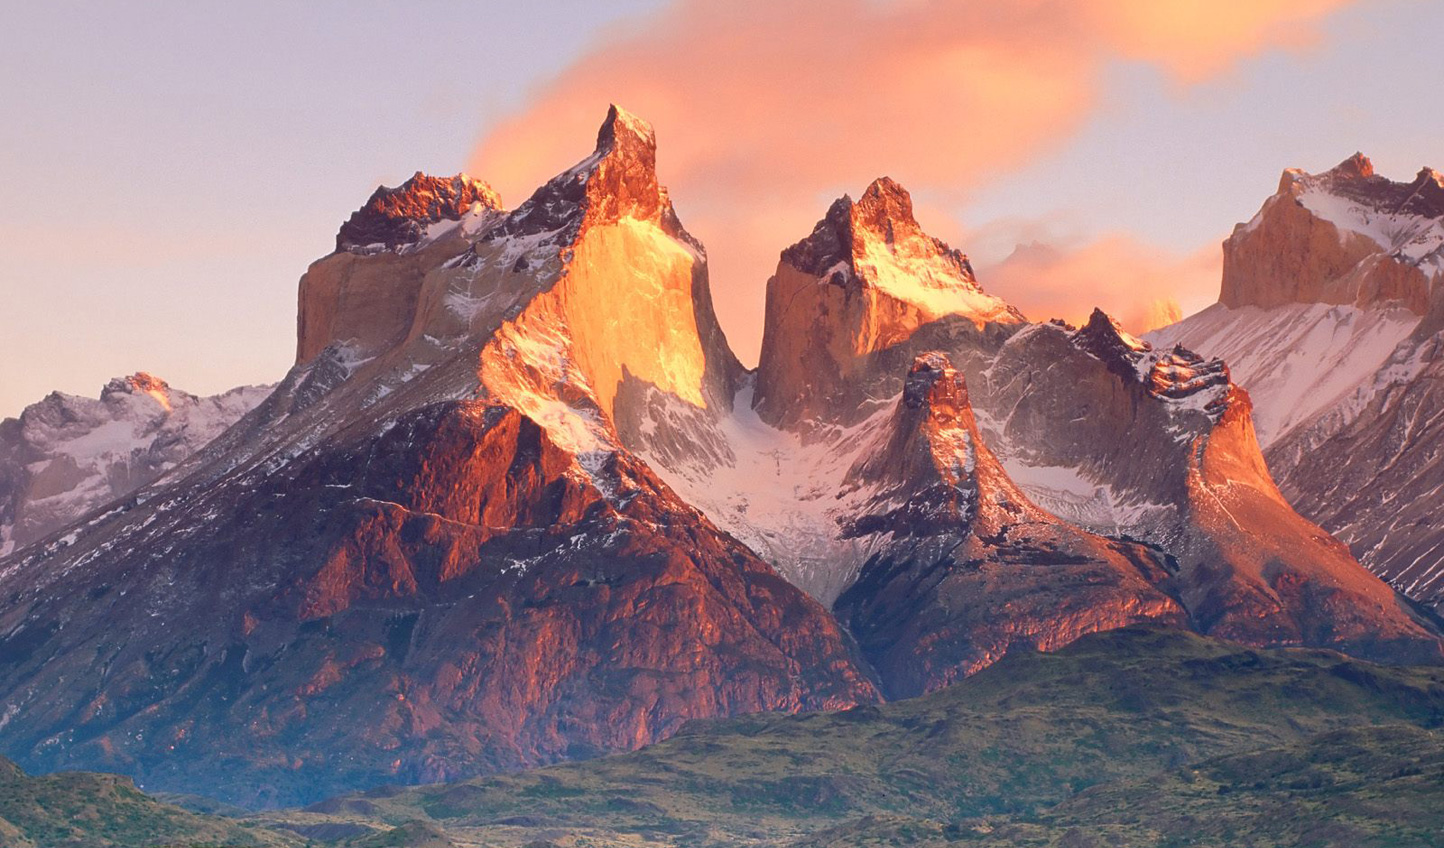 Take a moment to admire the view as the sun sets on Torres del Paine and your Patagonian adventure